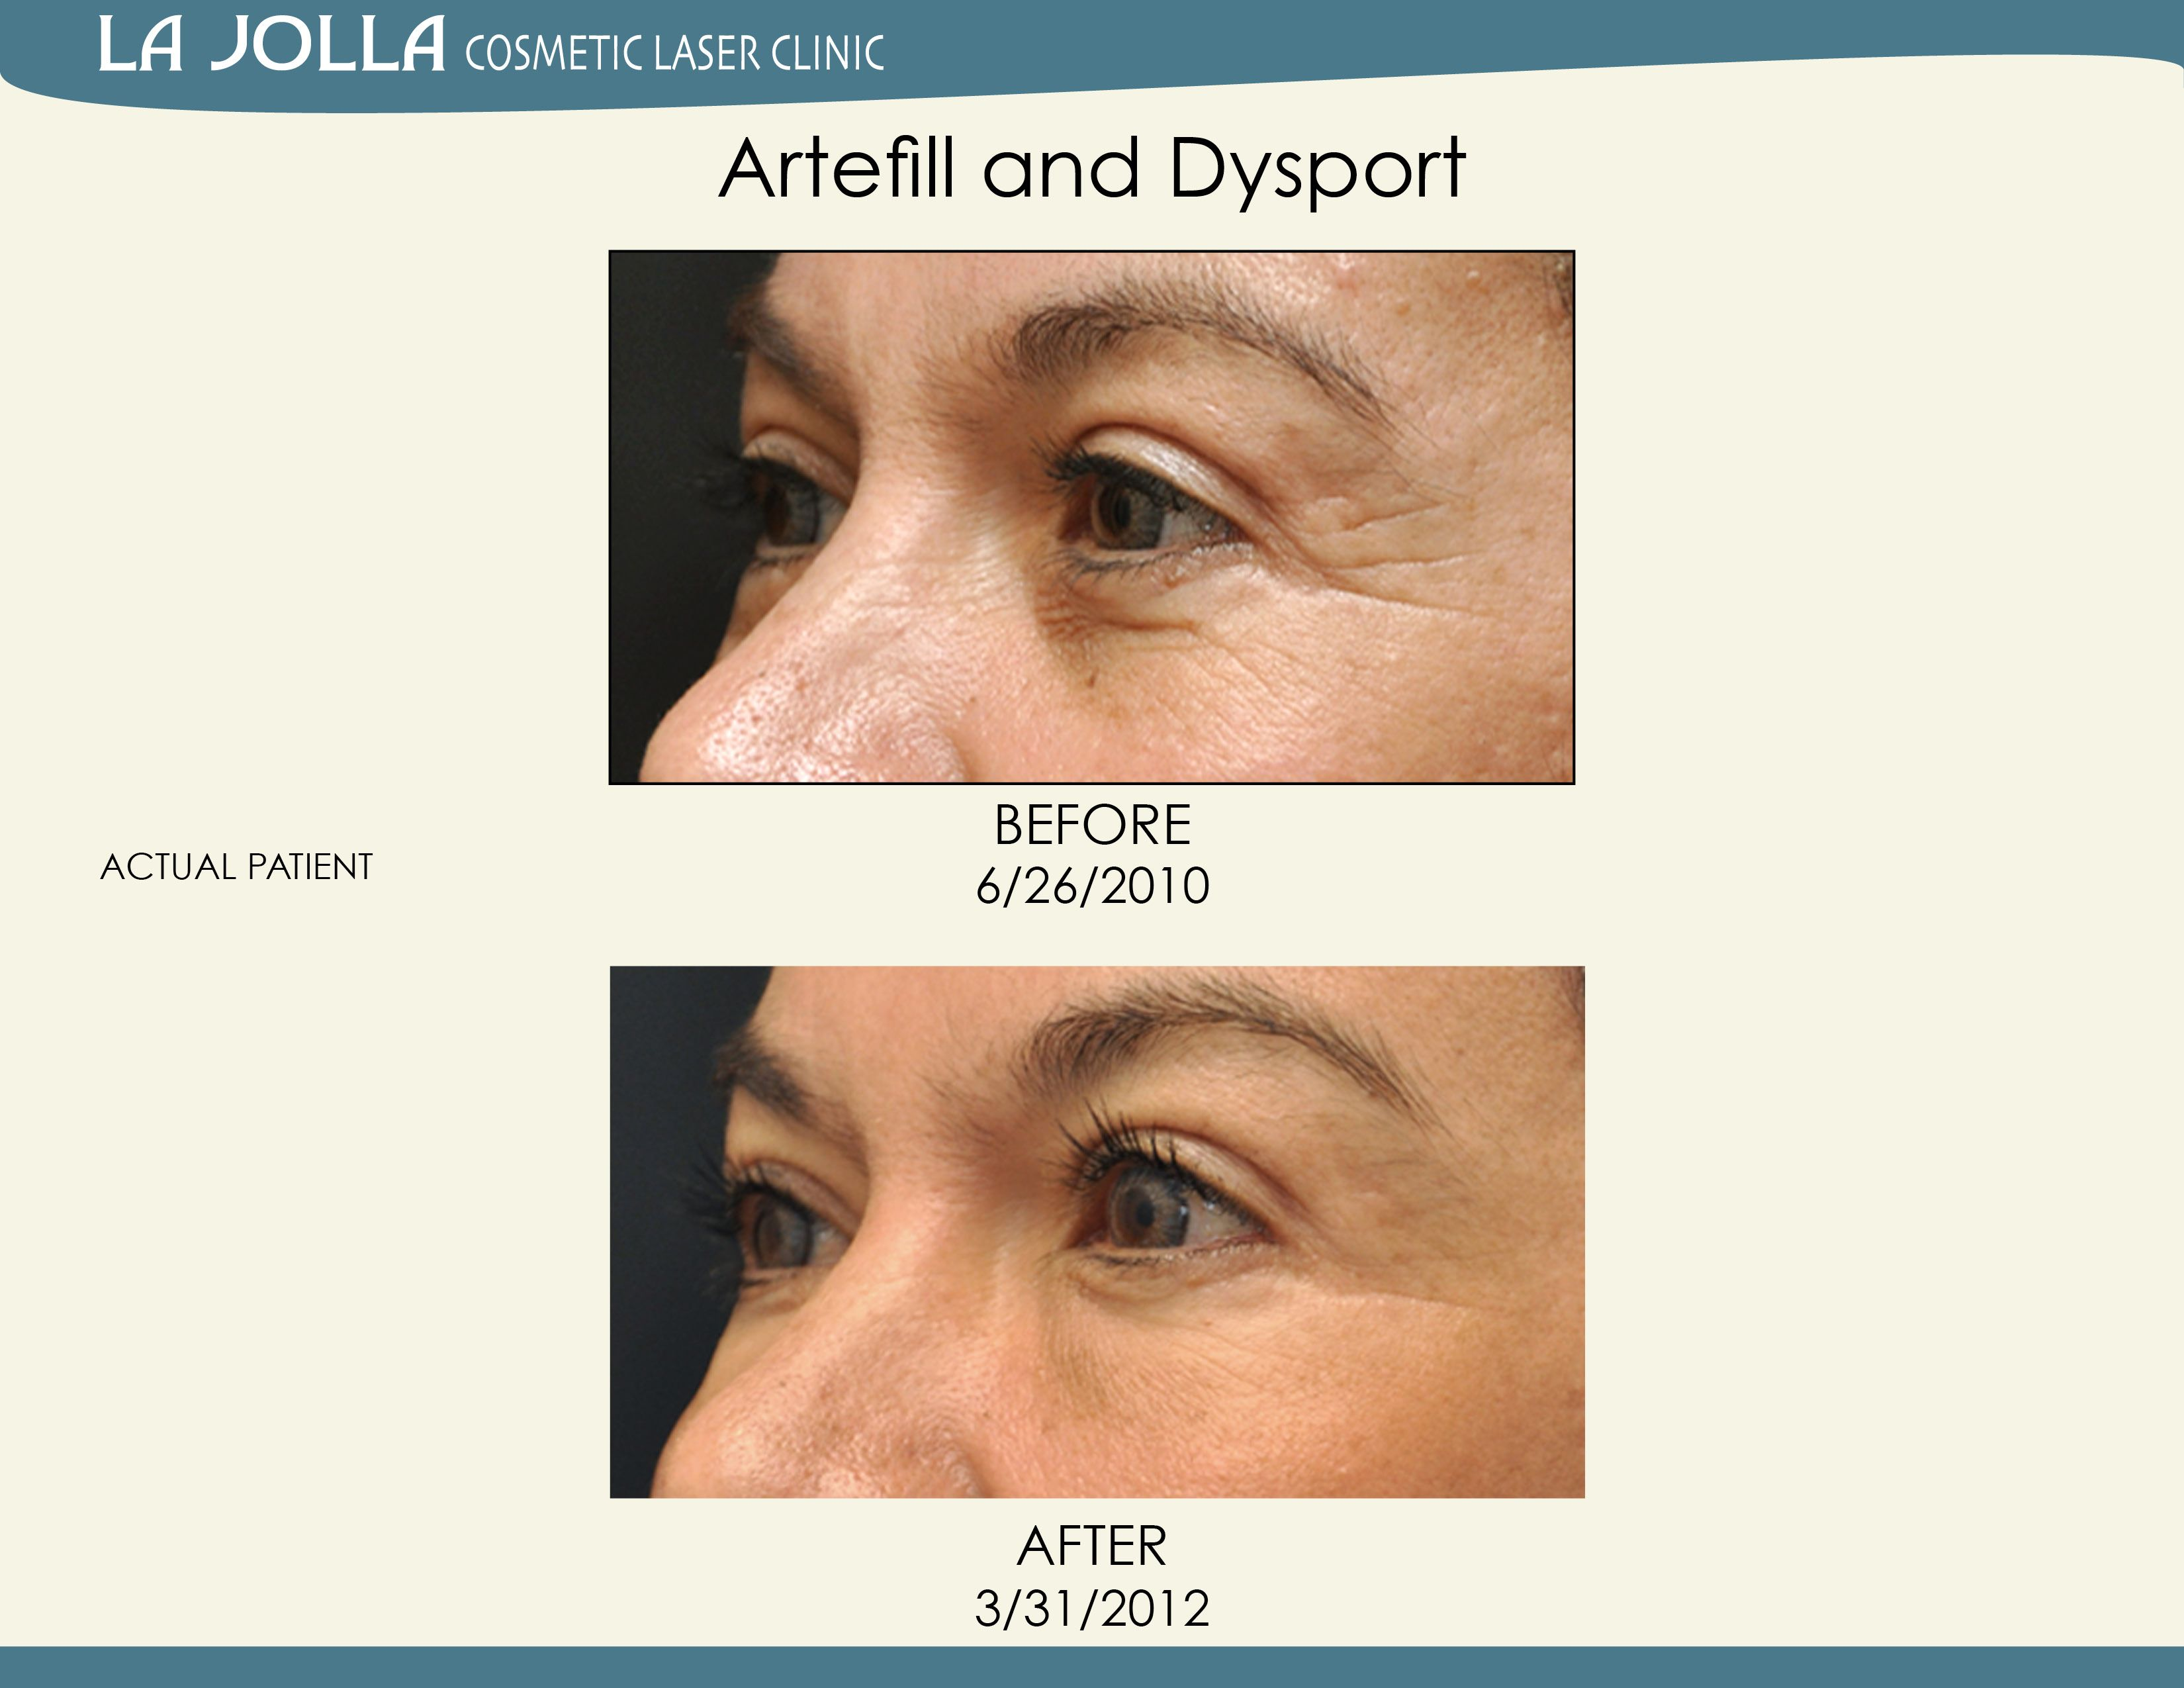 Patient Treated With Artefill And Dysport At La Jolla Cosmetic Laser Clinic Cosmetics Laser Under Eye Fillers Laser Clinics